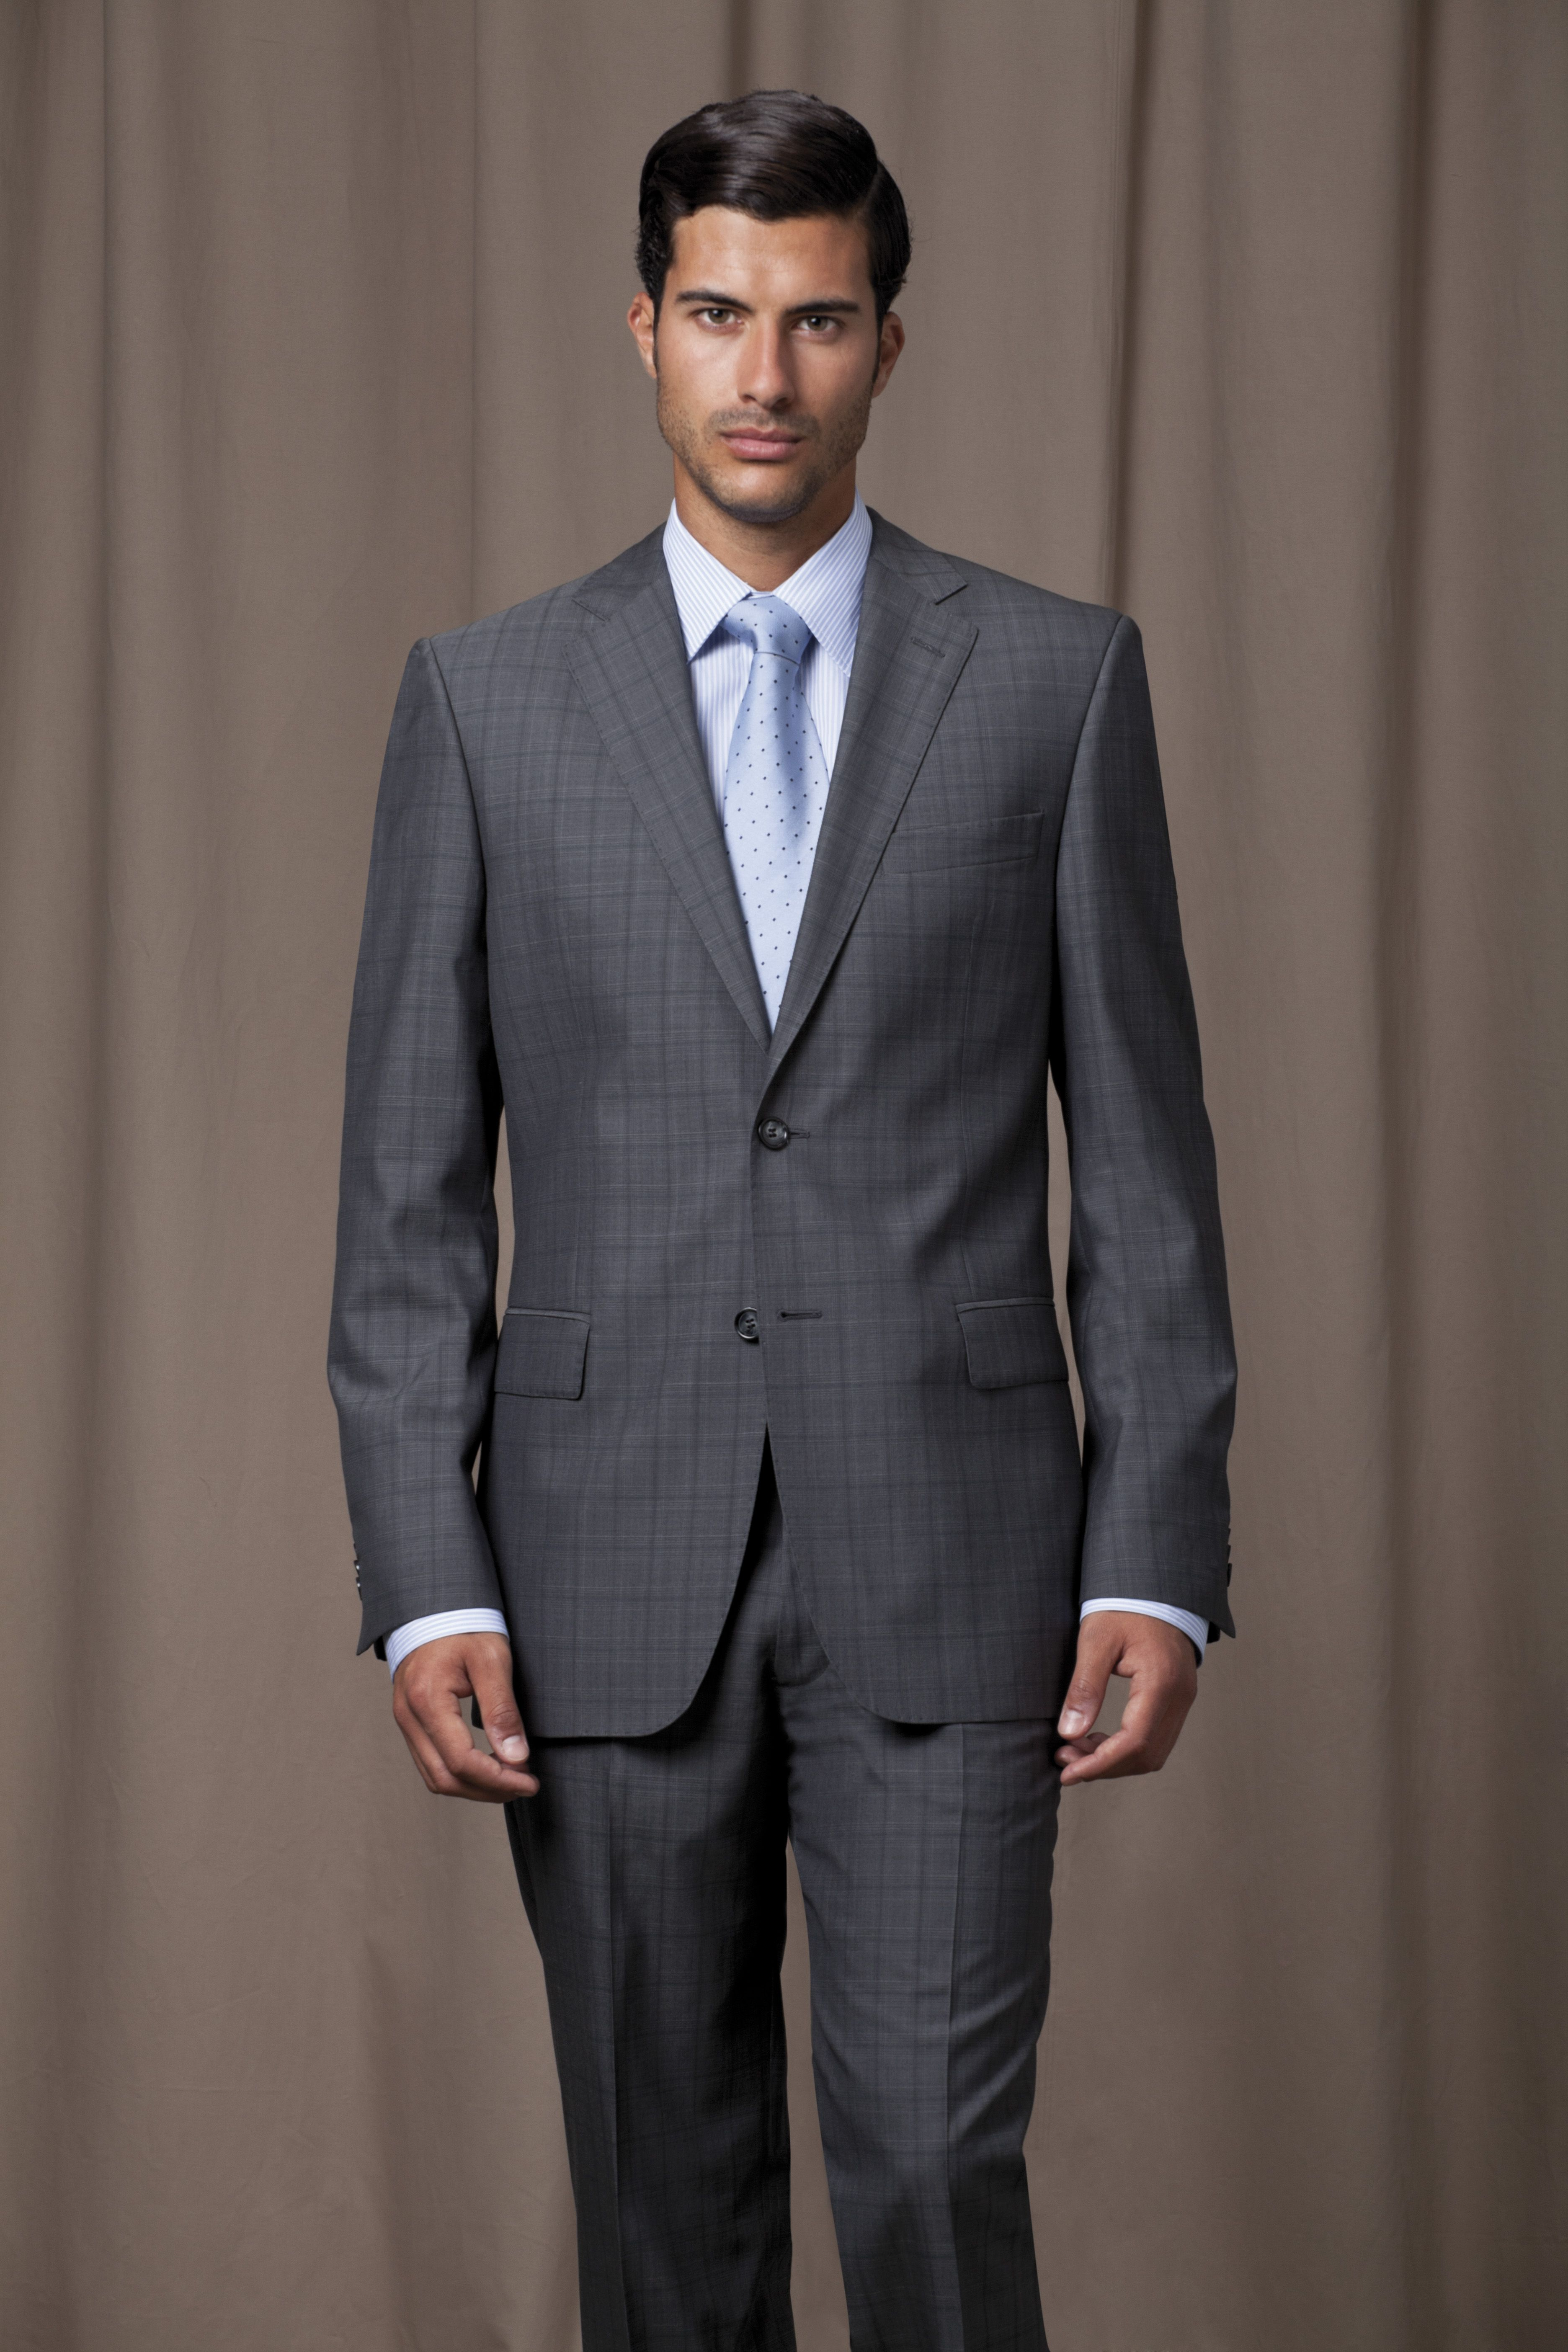 Light grey suit with powder blue shirt | S/S 2012: For him ...